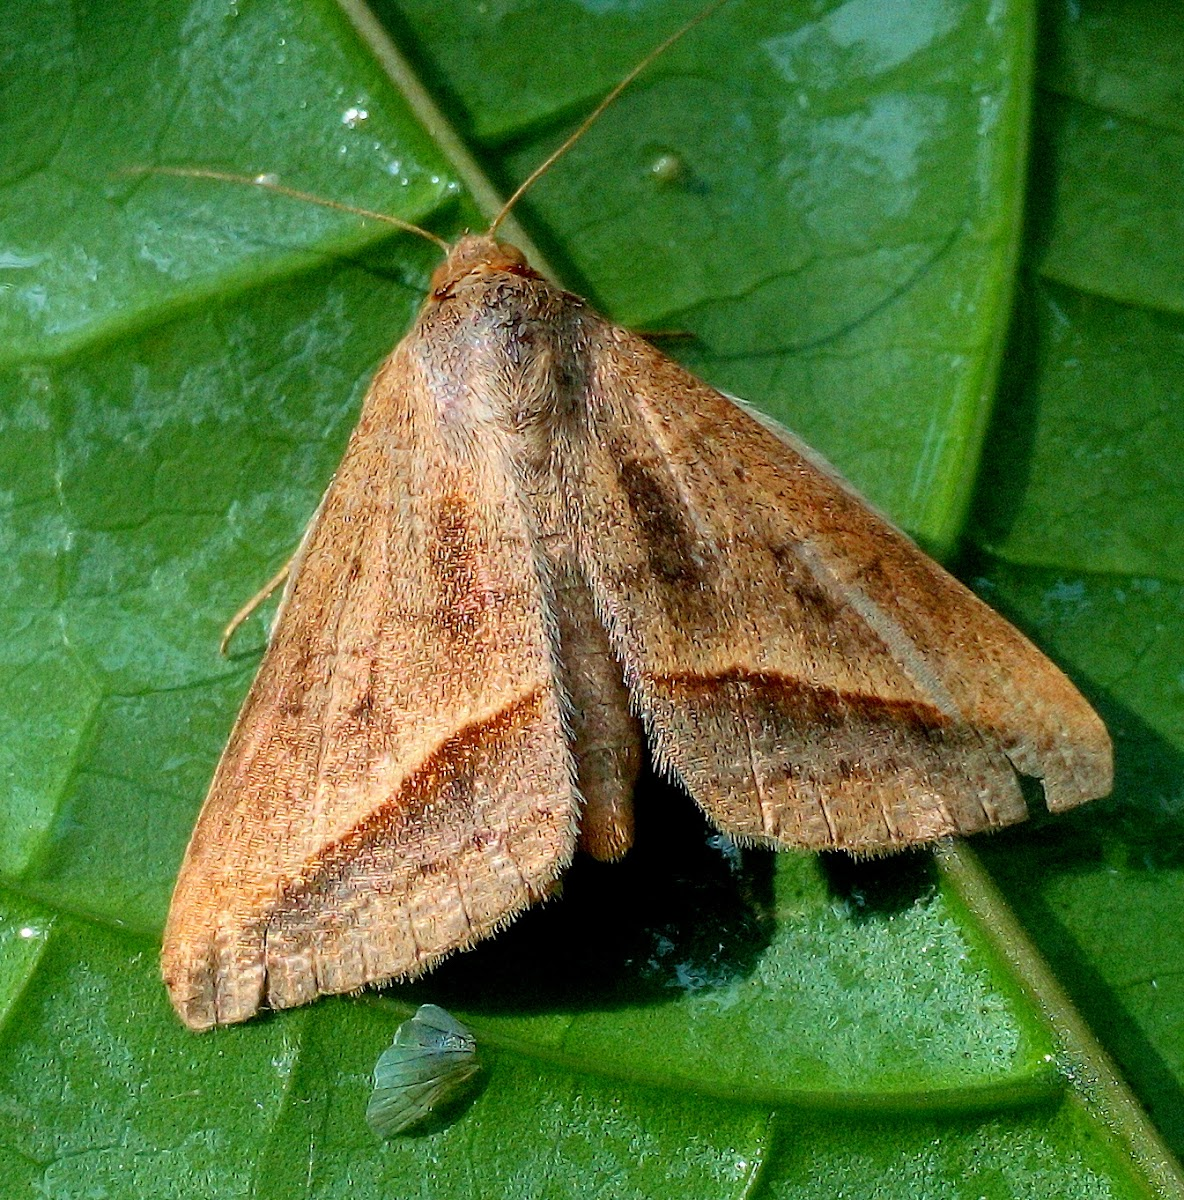 The Sugarcane Looper Moth